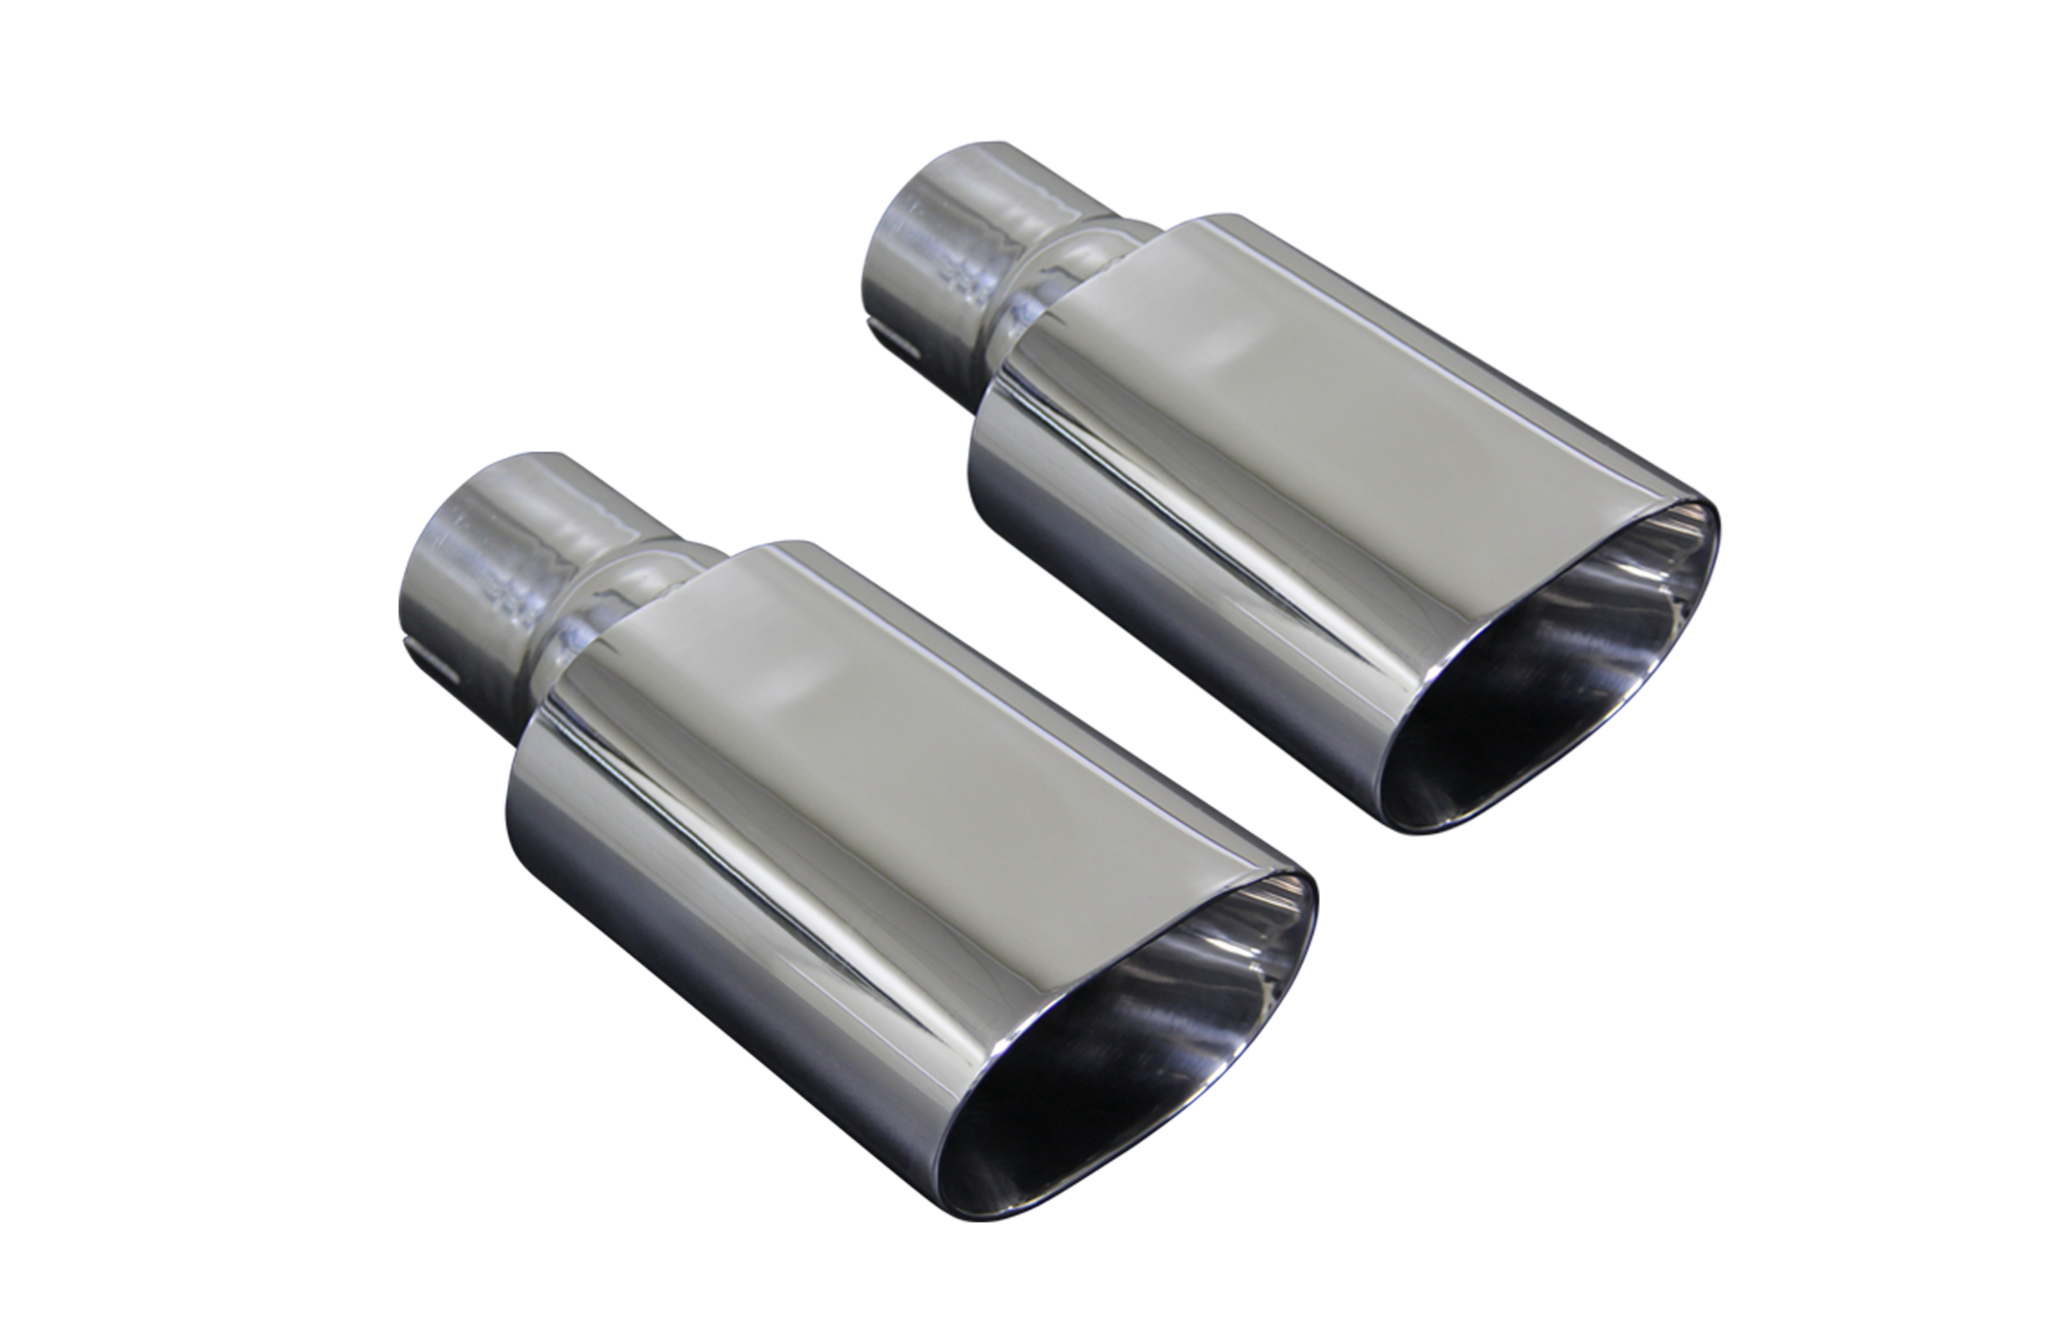 Chevelle Tips - Double Walled, Polished Stainless Steel